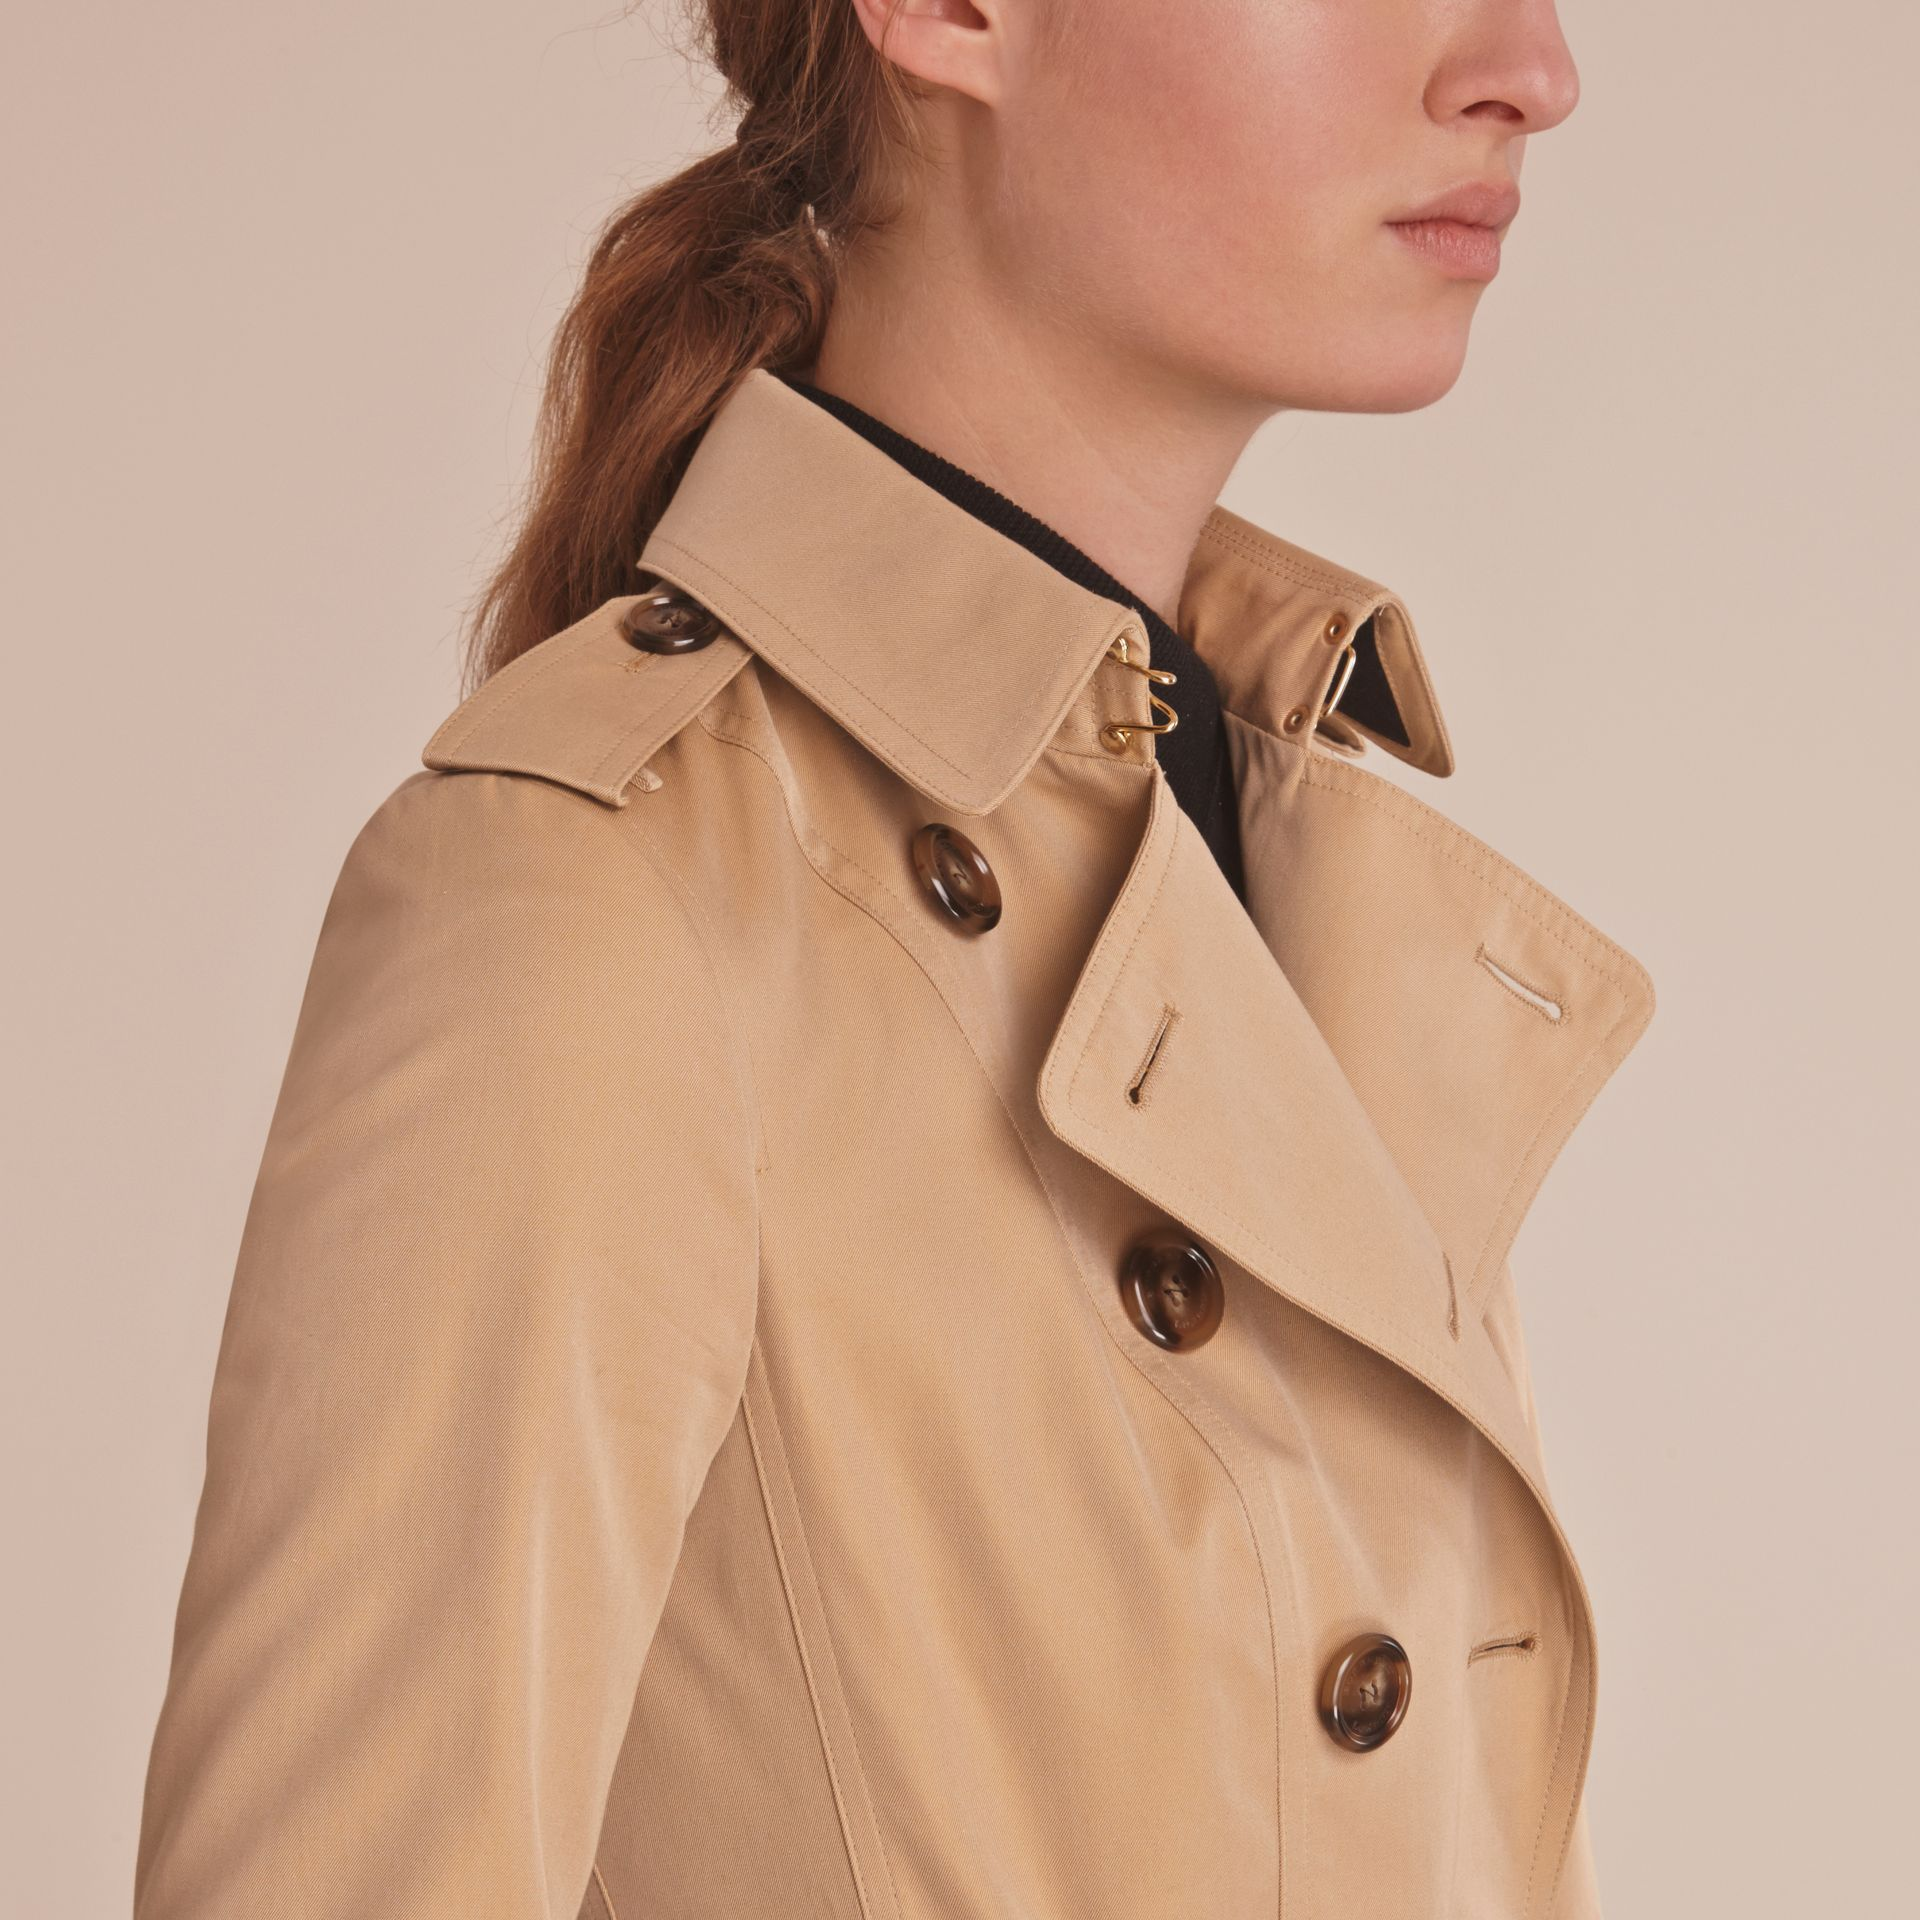 Trench-coat en gabardine de coton avec bordure en cuir - photo de la galerie 5